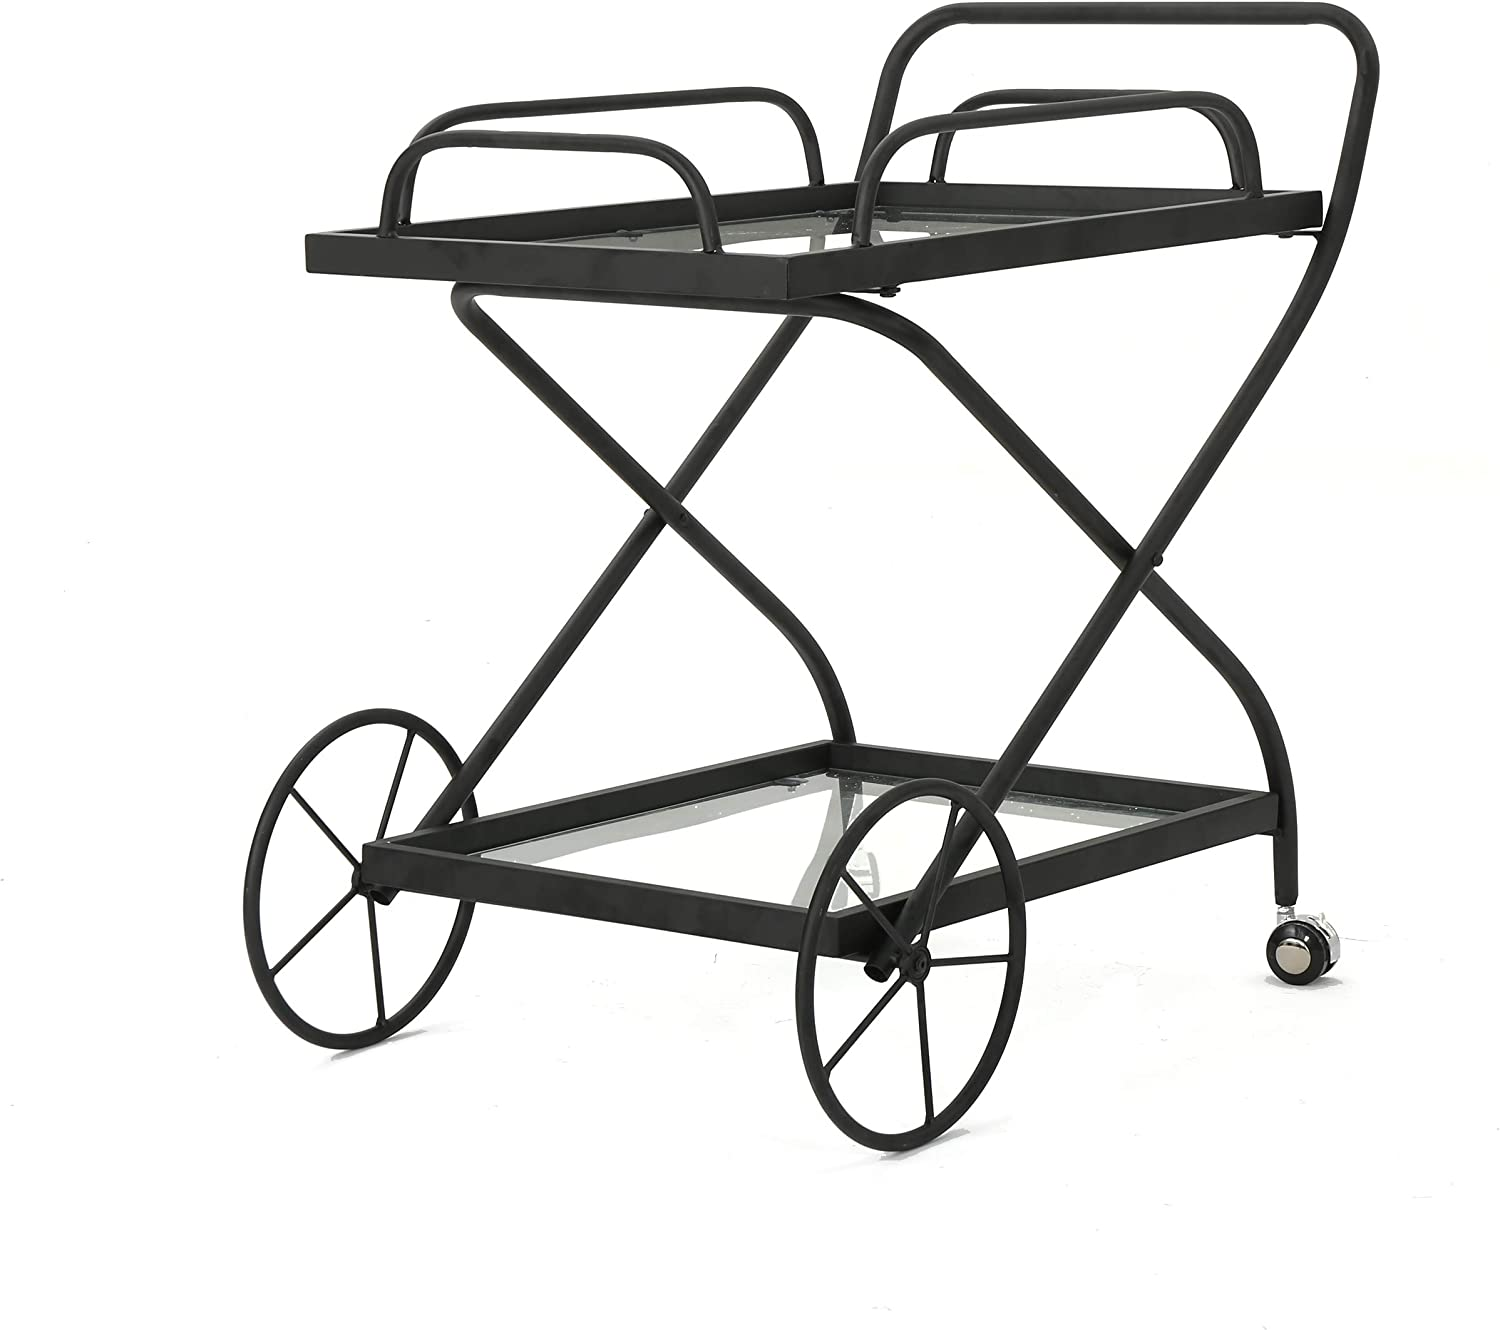 Christopher Knight Home Perley Indoor Traditional Iron Bar Cart with Tempered Glass Shelves, Black